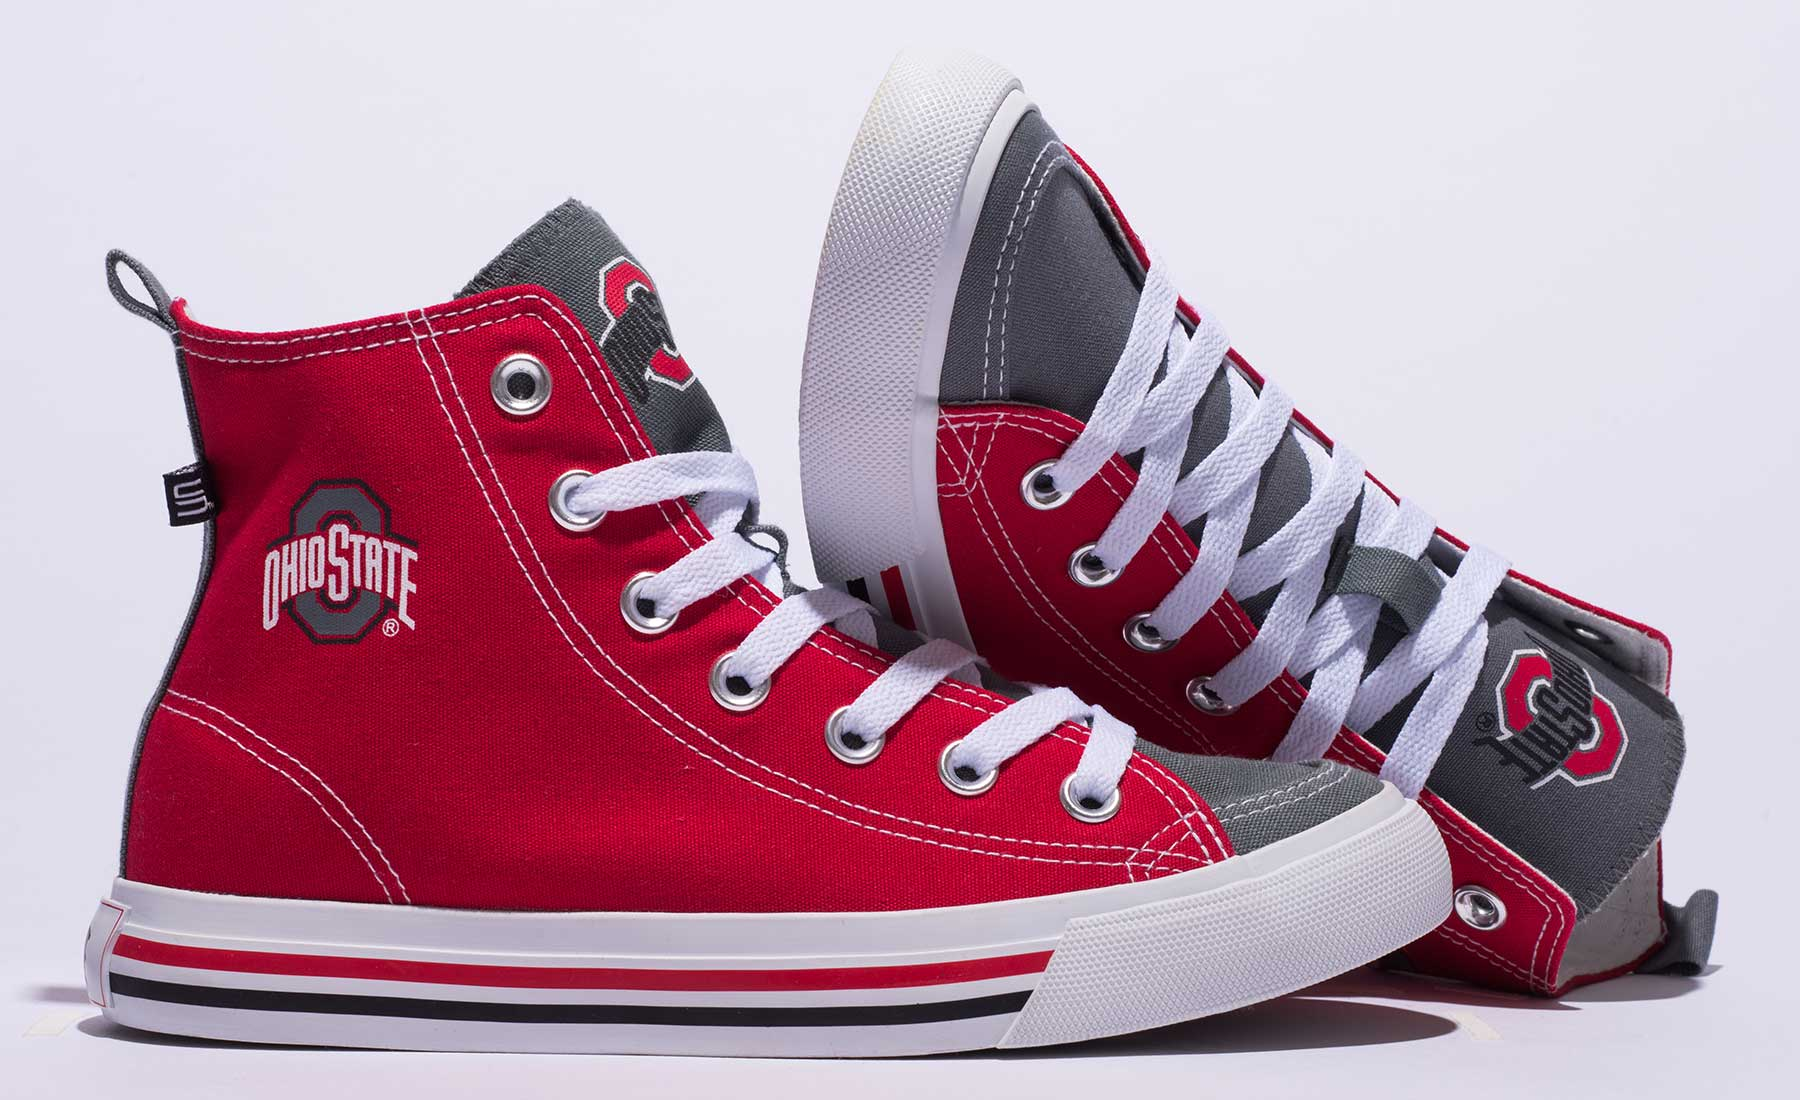 Ohio State-branded SKICKS sneakers